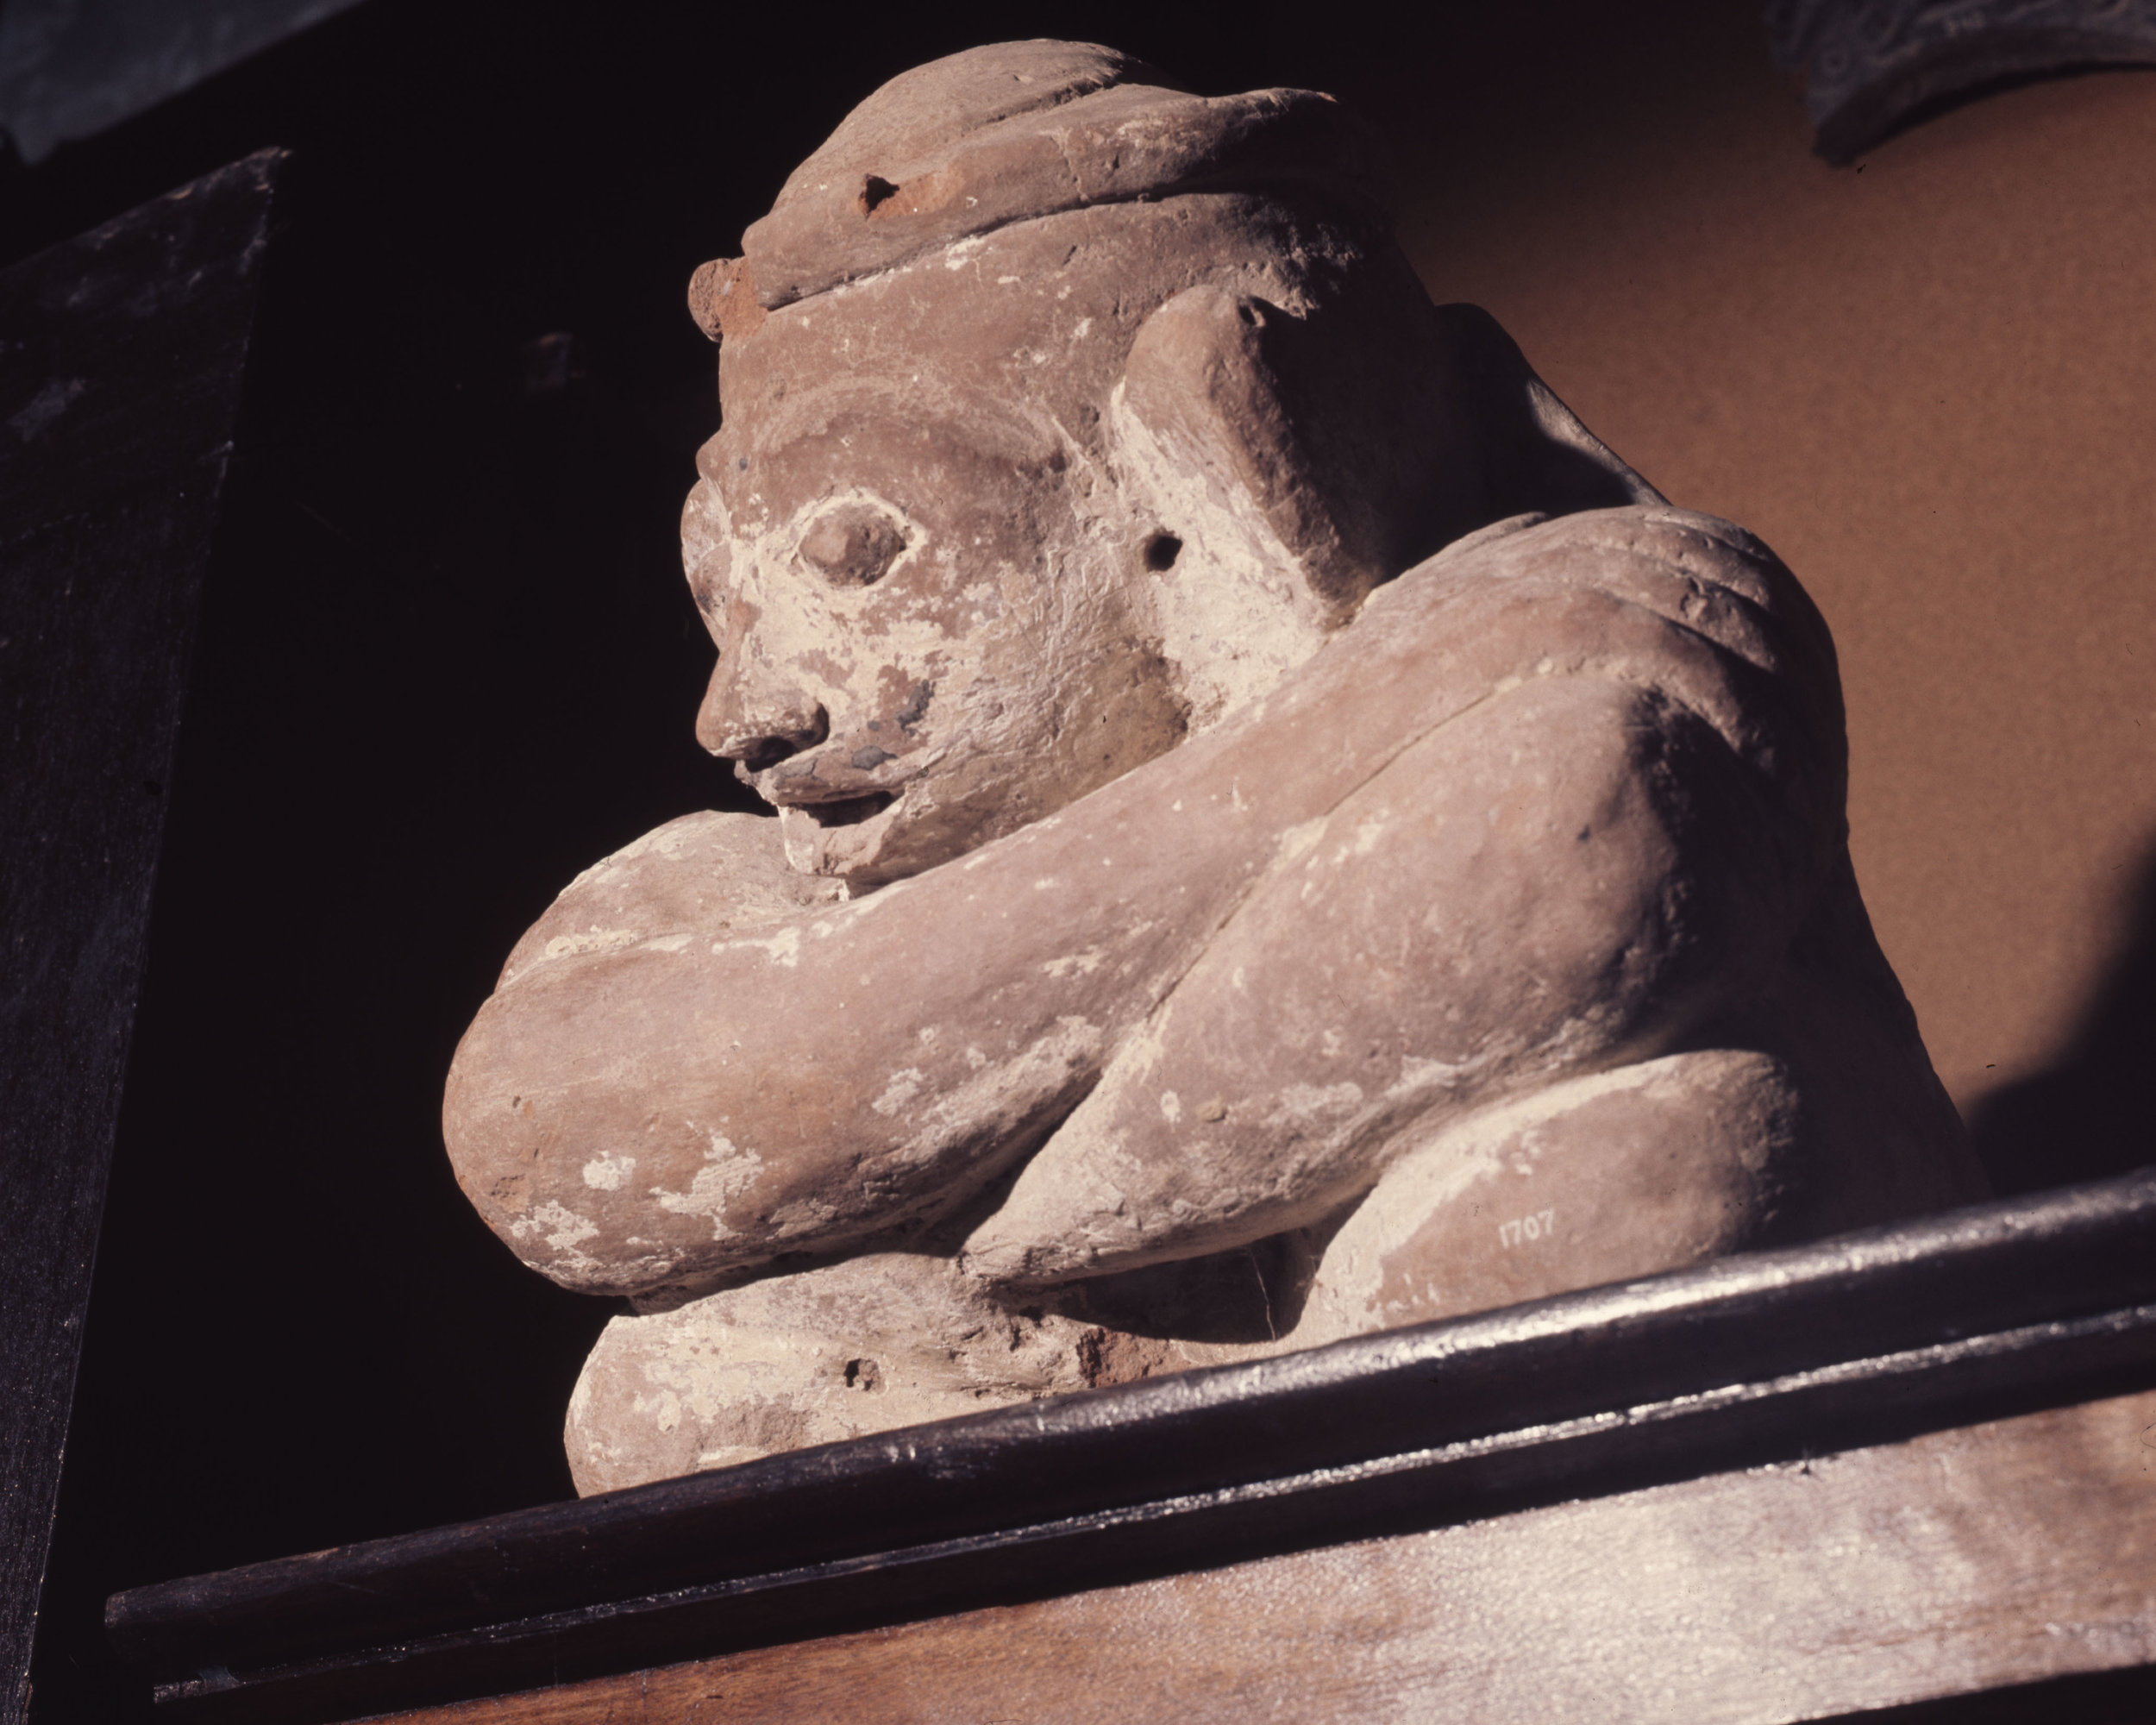 Stone sculpture of a seated man. Country of Origin: Indonesia. Culture: Balinese. Place of Origin: Bali. Material Size: Stone. Credit Line: Werner Forman Archive.